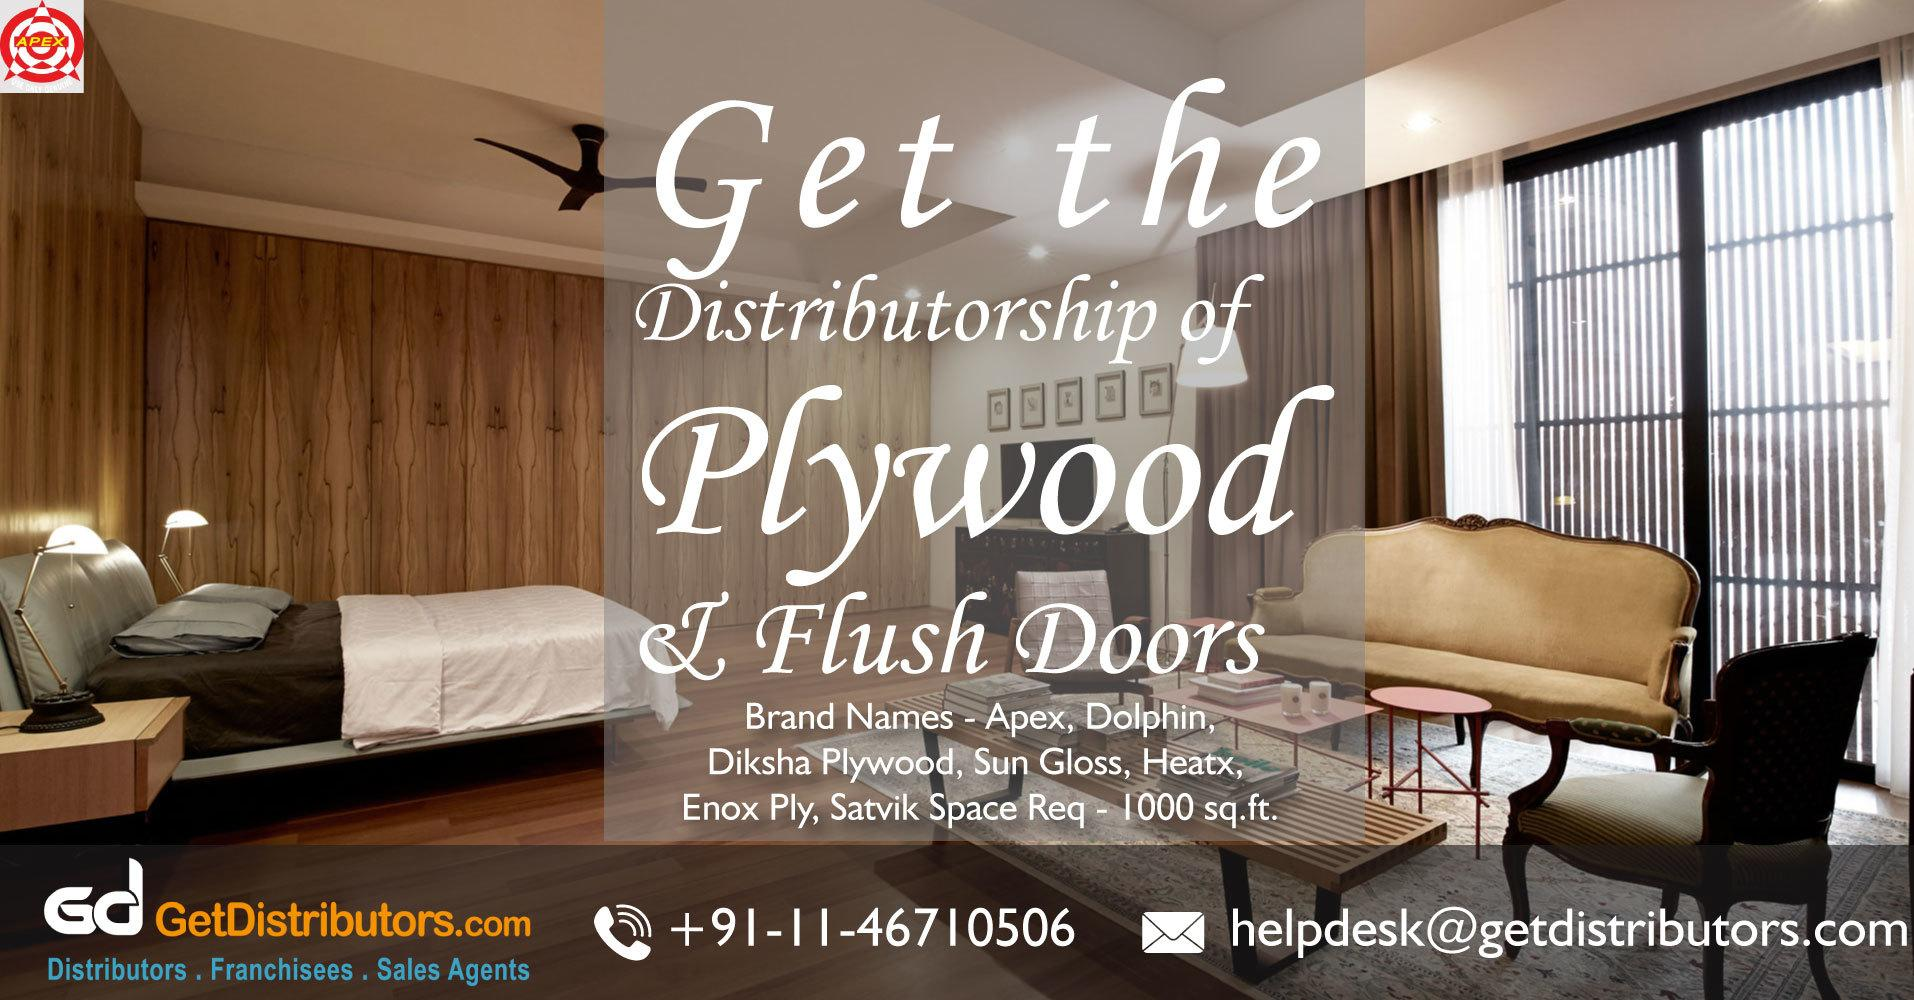 How To Get Plywood Distributorship